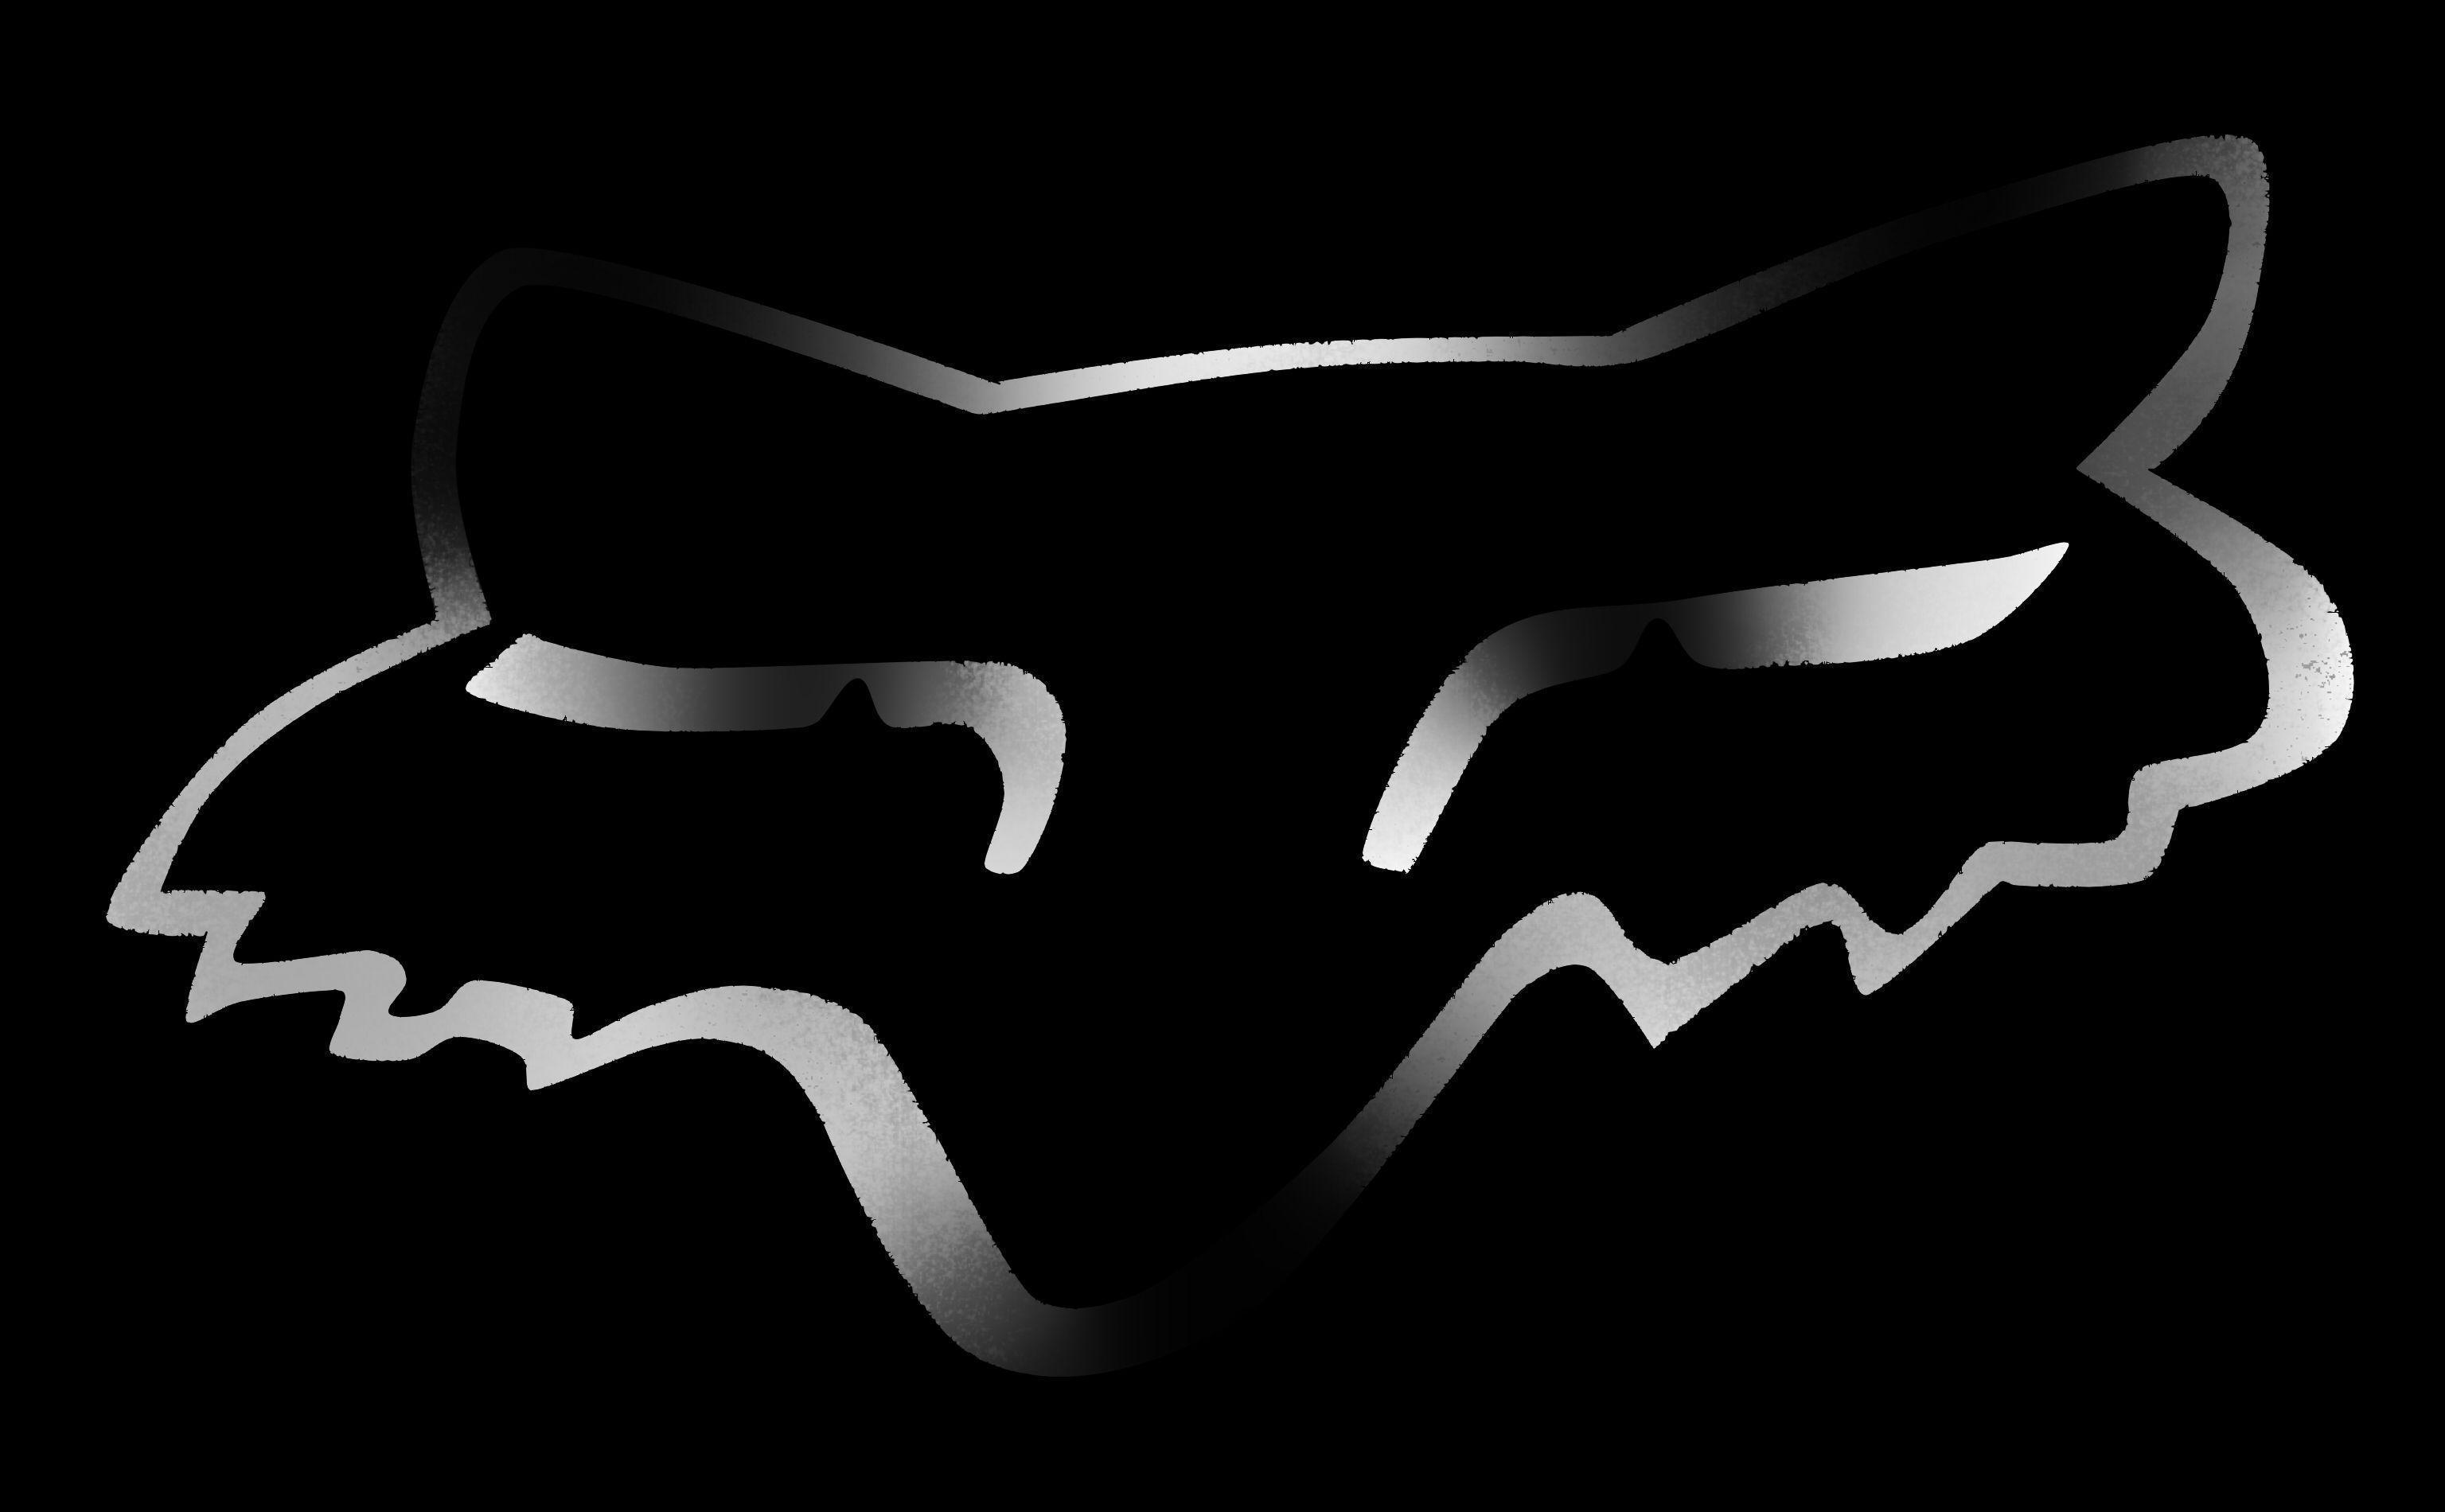 Fox Logo Wallpapers - Wallpaper Cave - photo#8